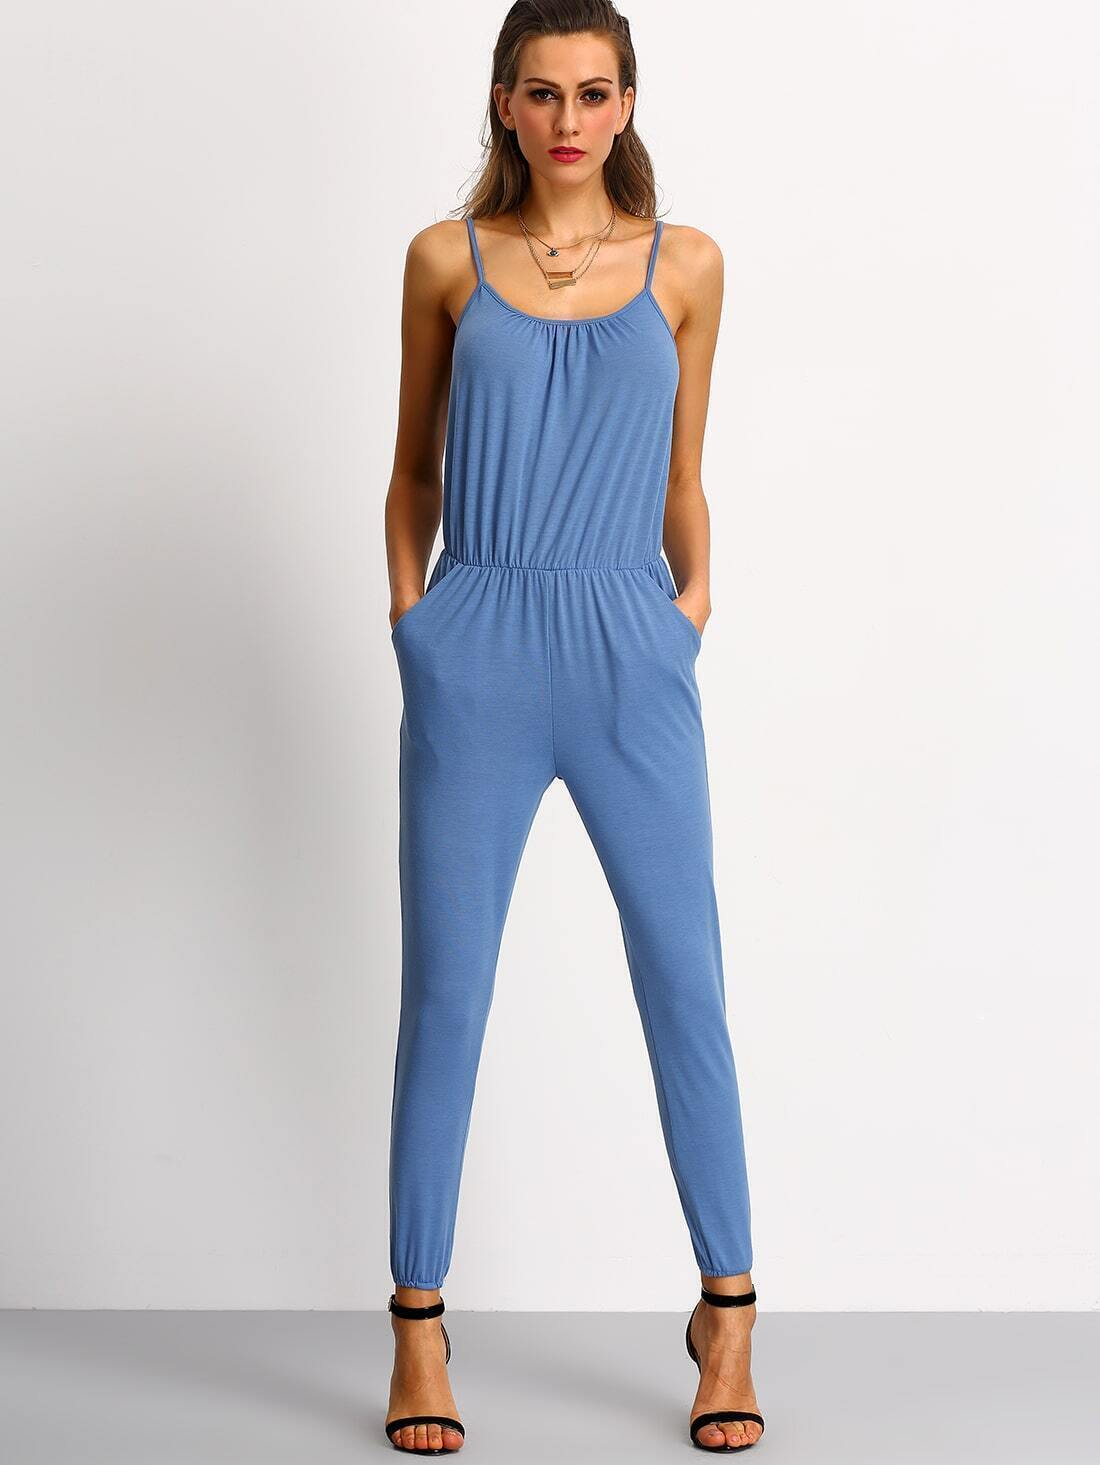 Blue Spaghetti Strap Pockets Slim Jumpsuit